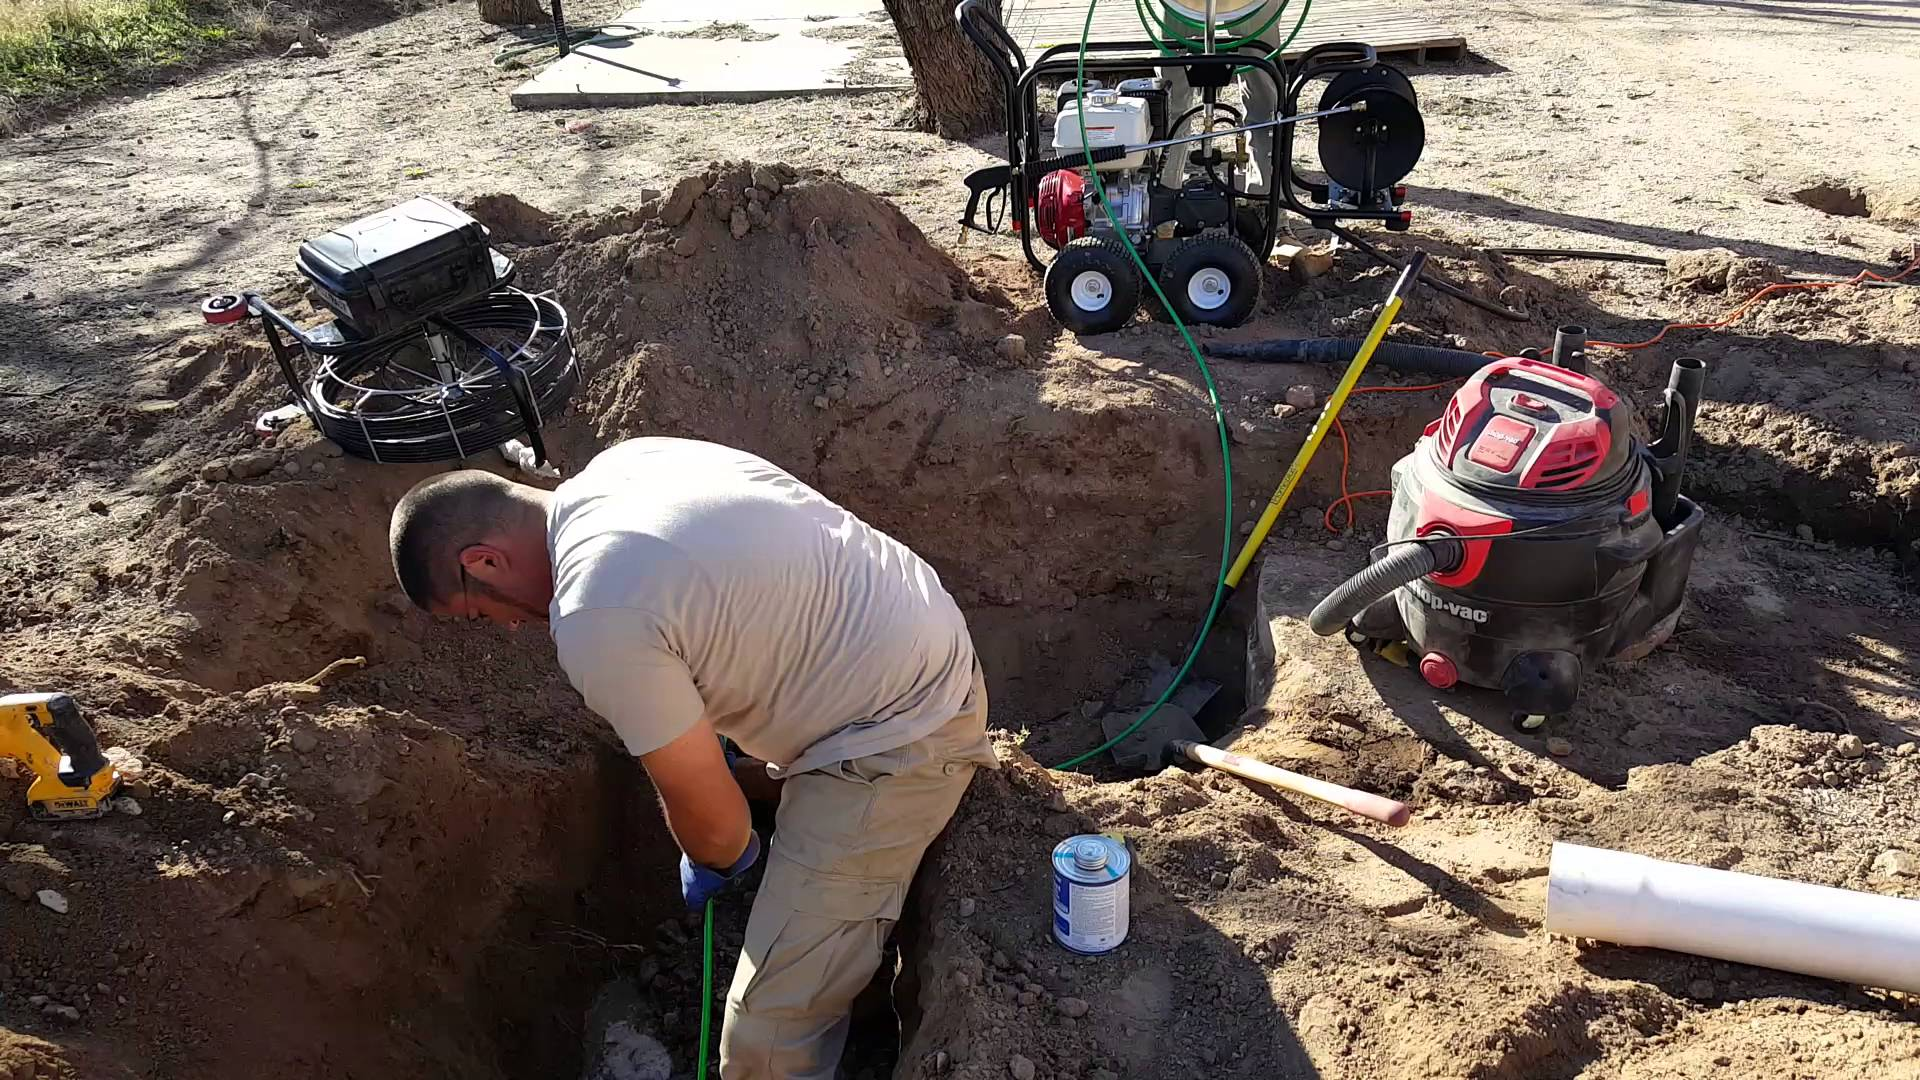 How often does septic tank need to be emptied-San Diego Septic Tank Repair, Installation, & Pumping Service Pros-We do septic tank pumping, tank repairs, septic tank installations, 24/7 emergency septic services, septic tank replacement, inspections, drain cleaning, high velocity water jetting, septic system cleaning, pump-outs, septic tank maintenance, and more